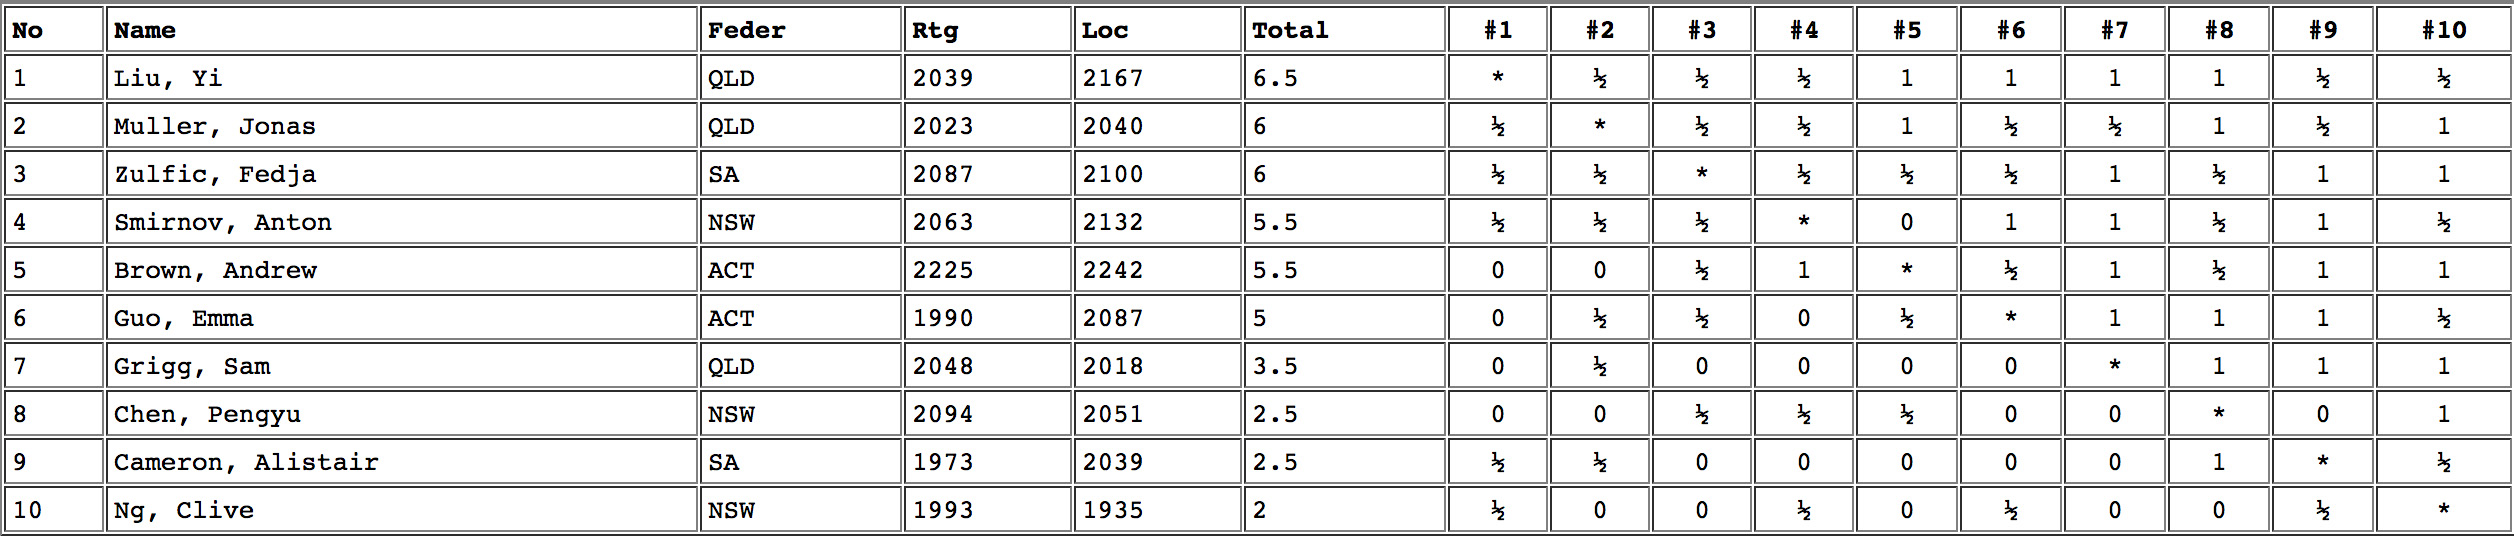 Lidums AYM 2011 Results